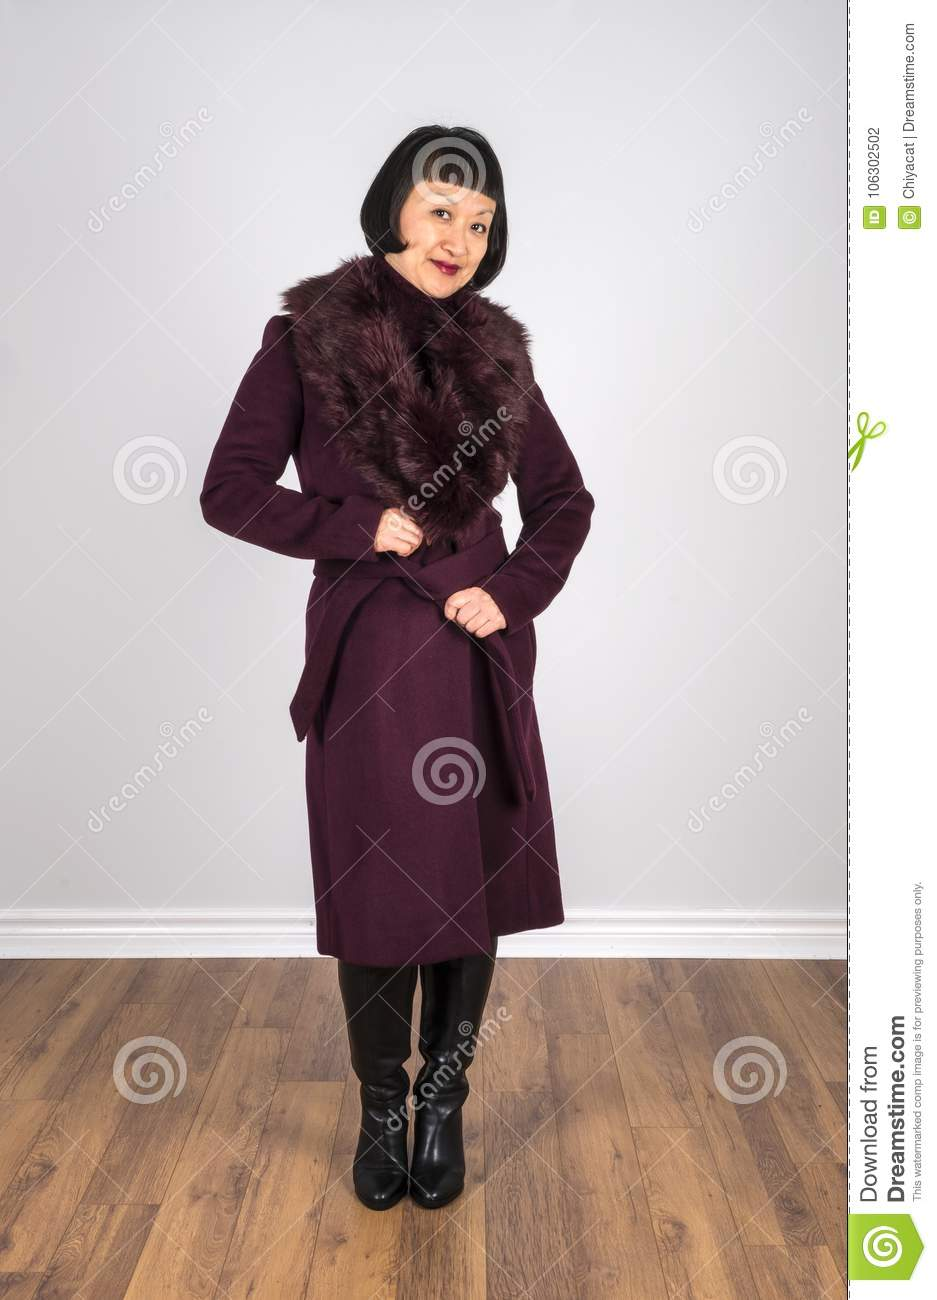 c13a16728a962 Asian Woman with Short Black Hair Wearing a Burgundy Colored Wool Coat 2